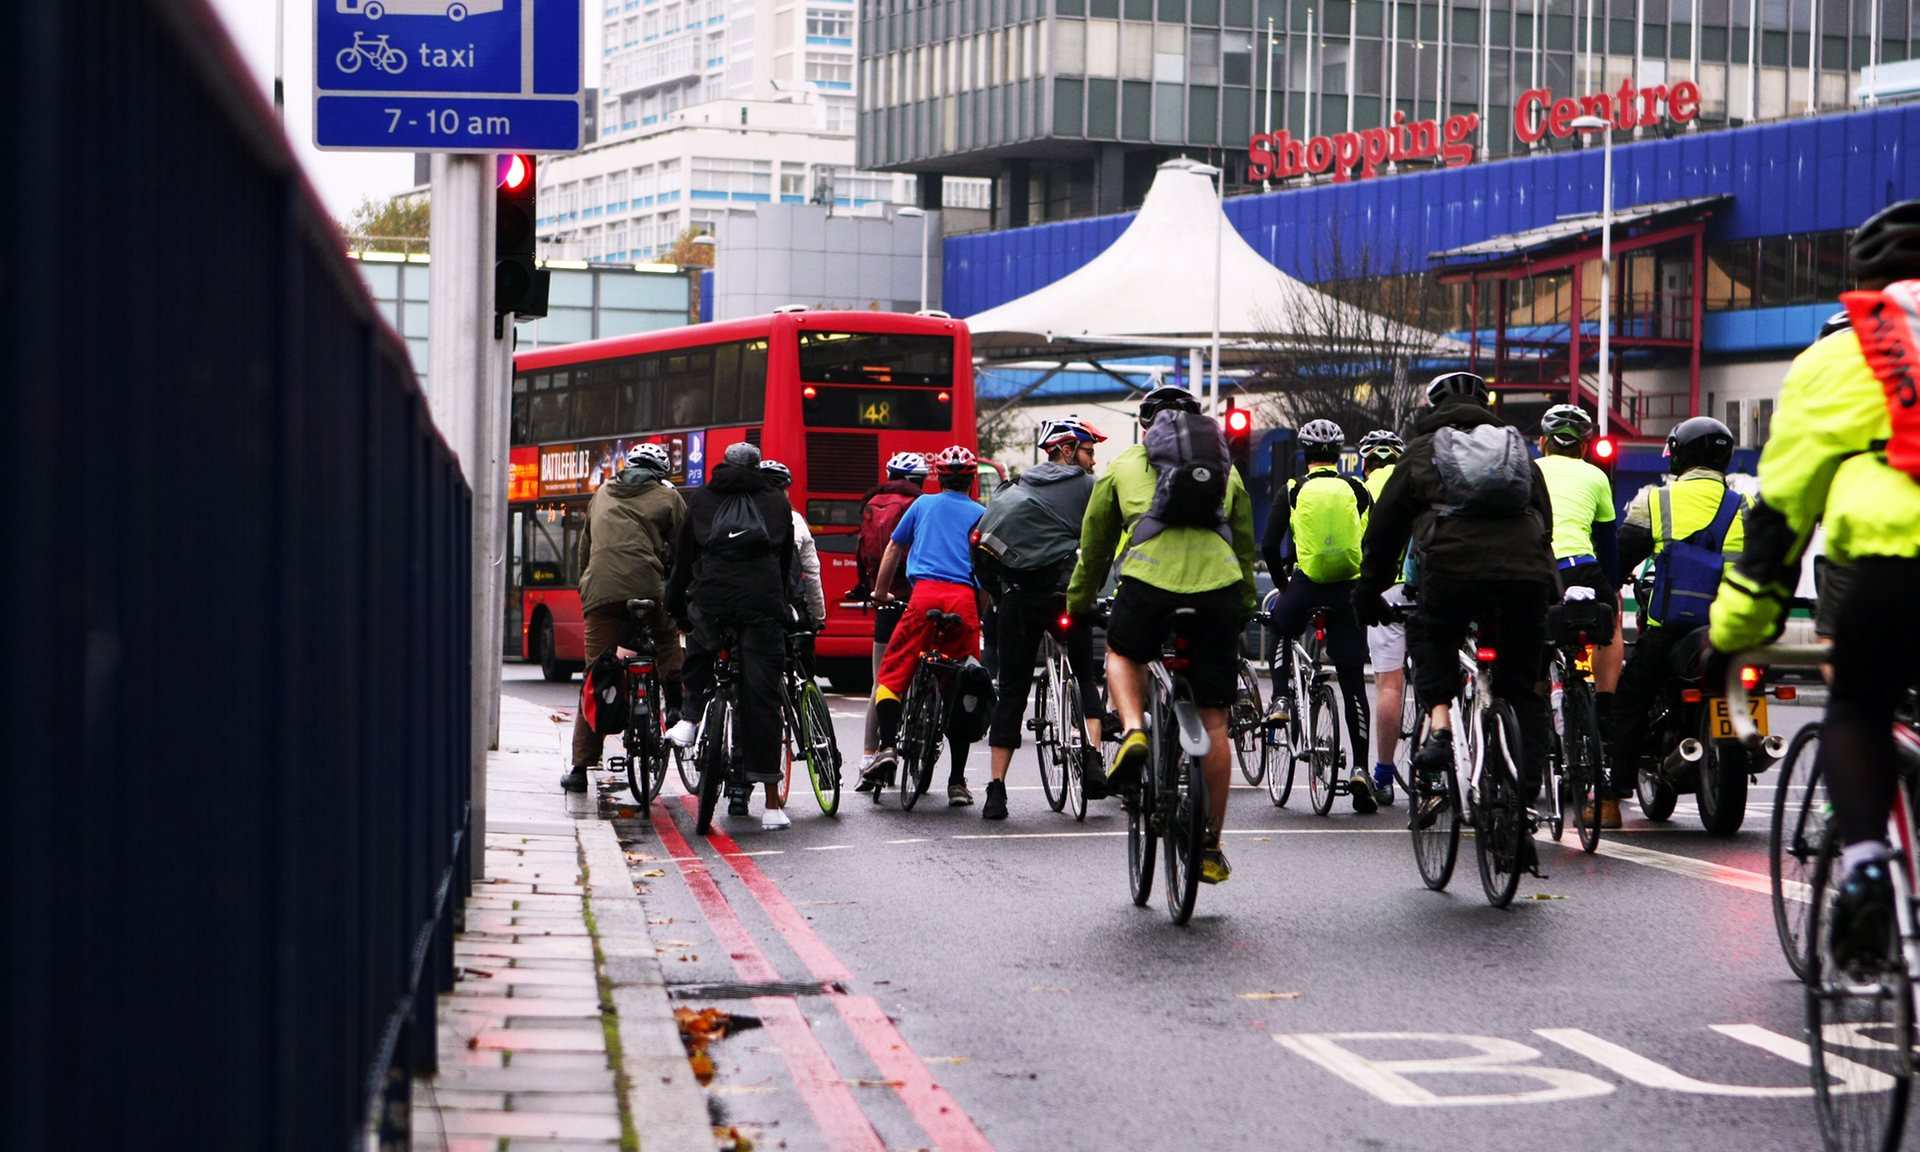 Cyclists in morning rush hour at the Elephant and Castle in London. Photograph: format4/Alamy